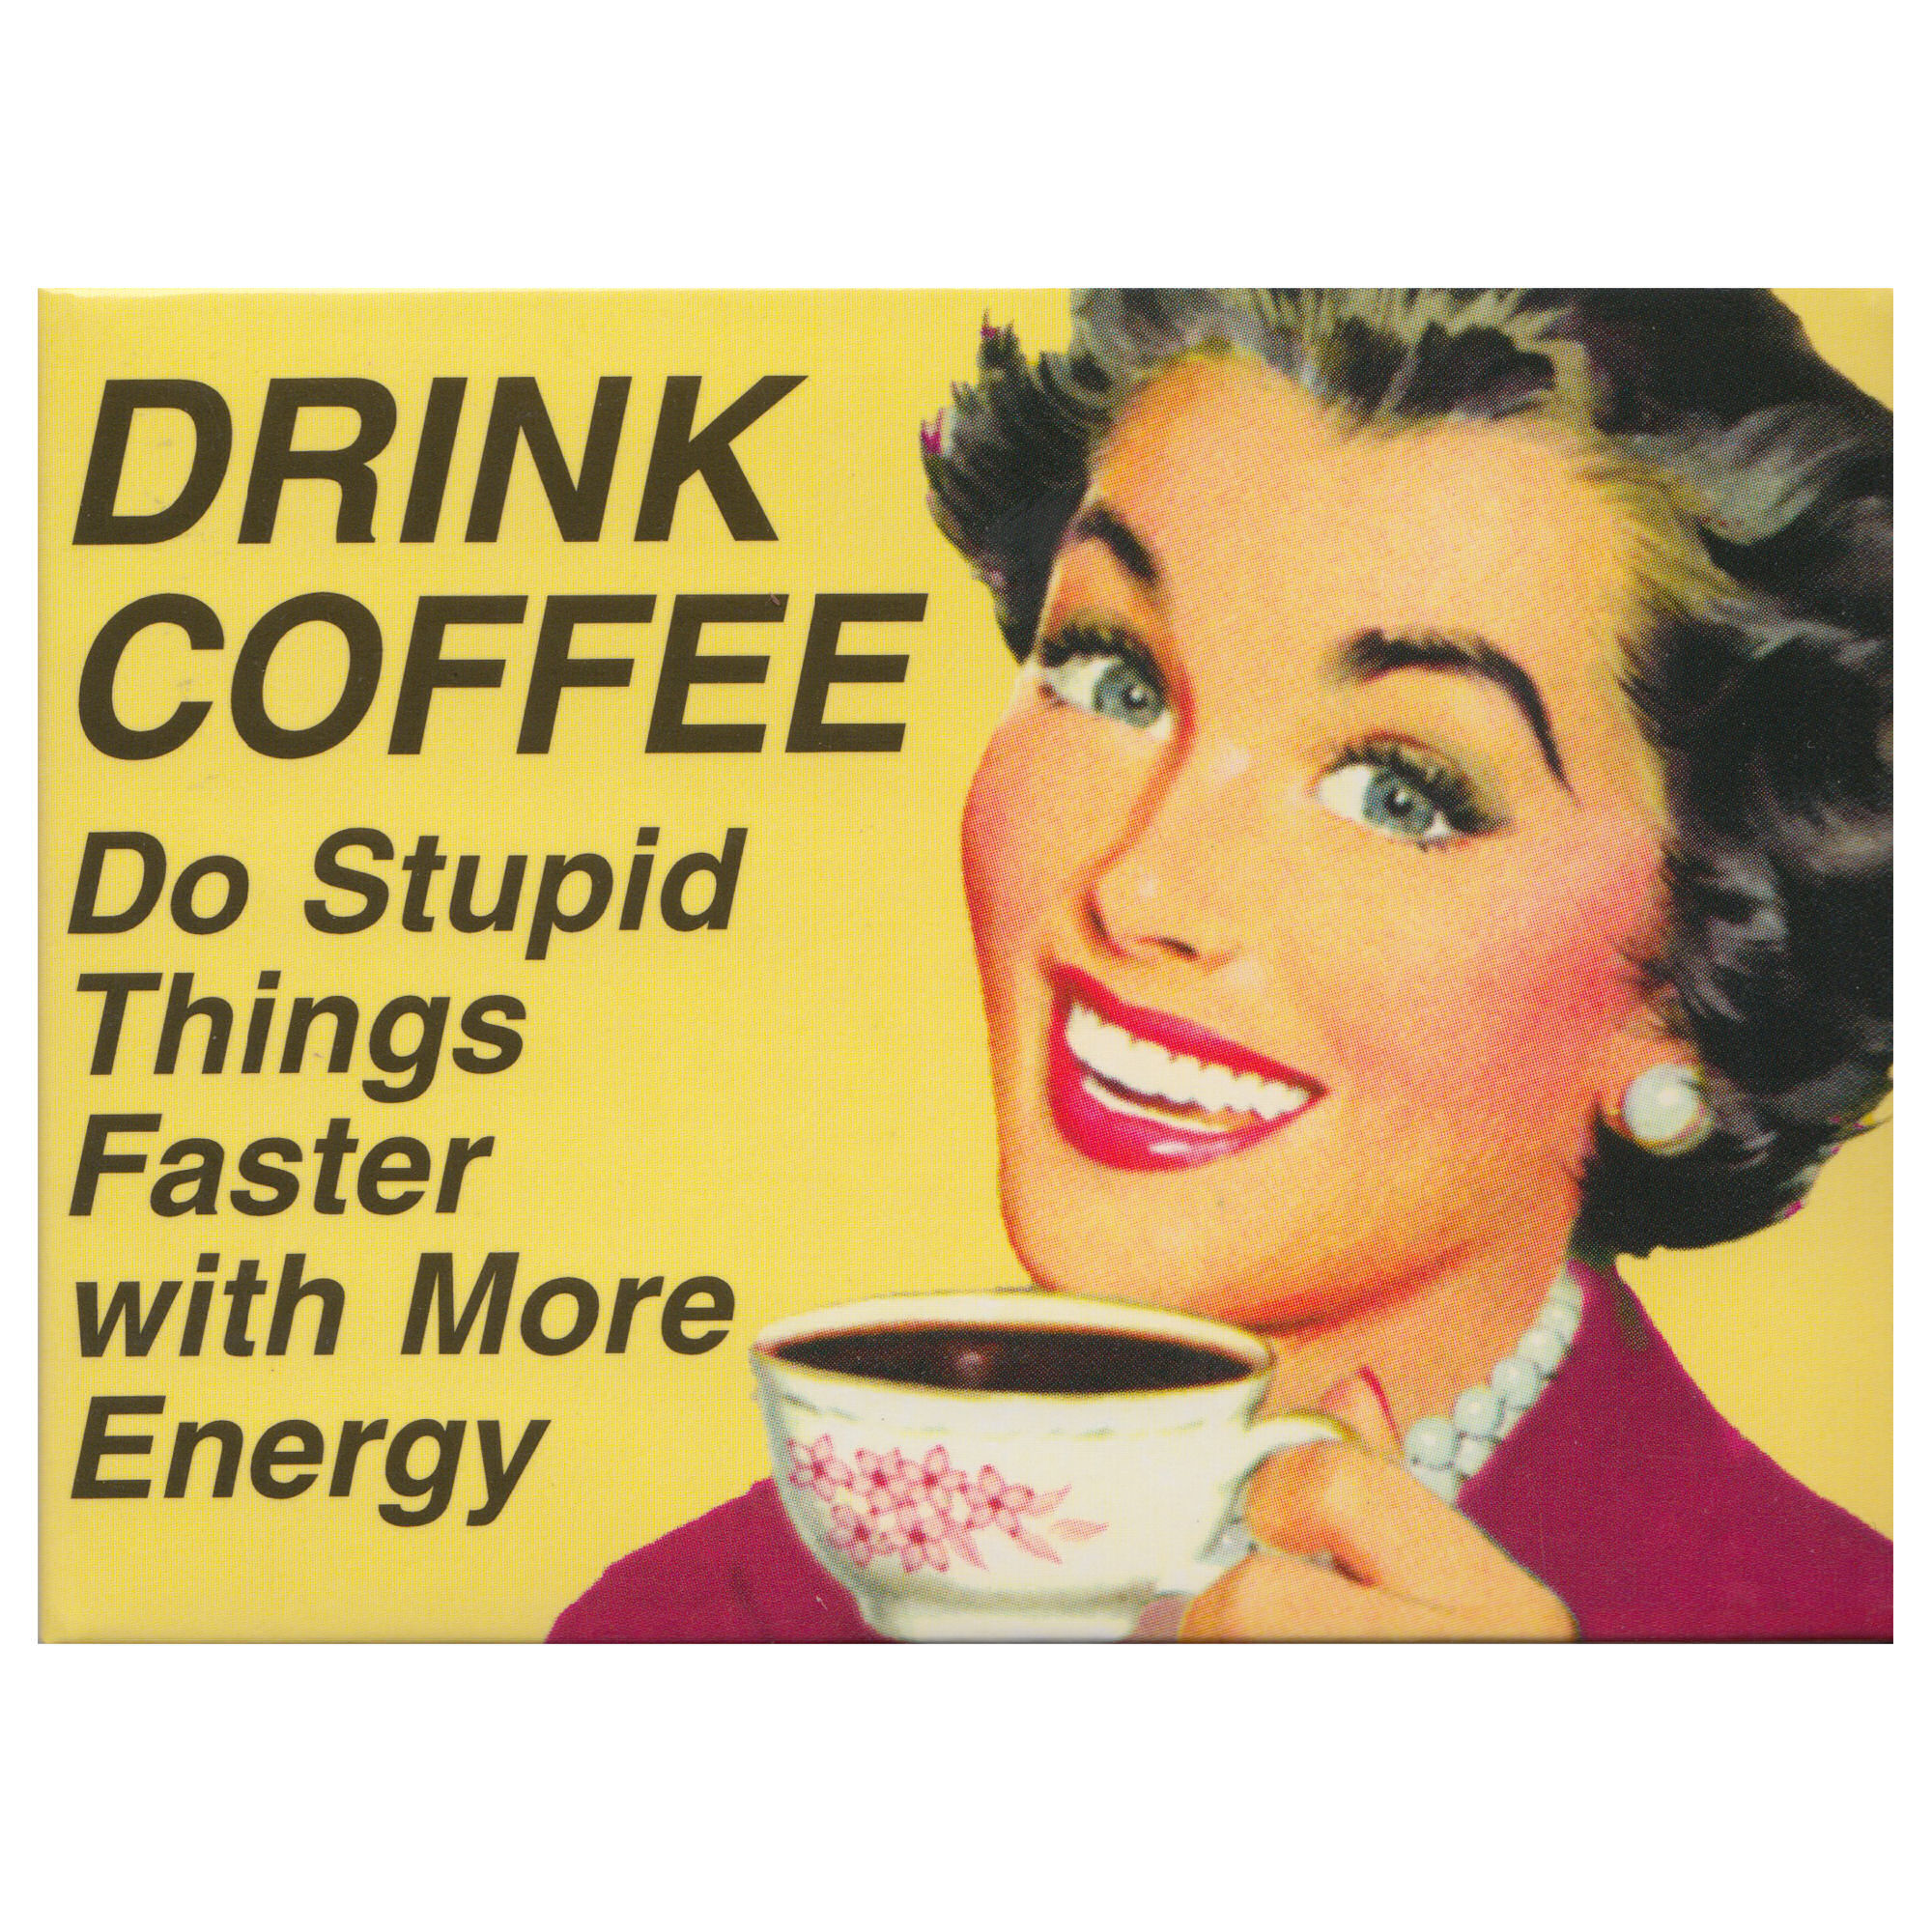 Drink Coffee Stupid Things Faster